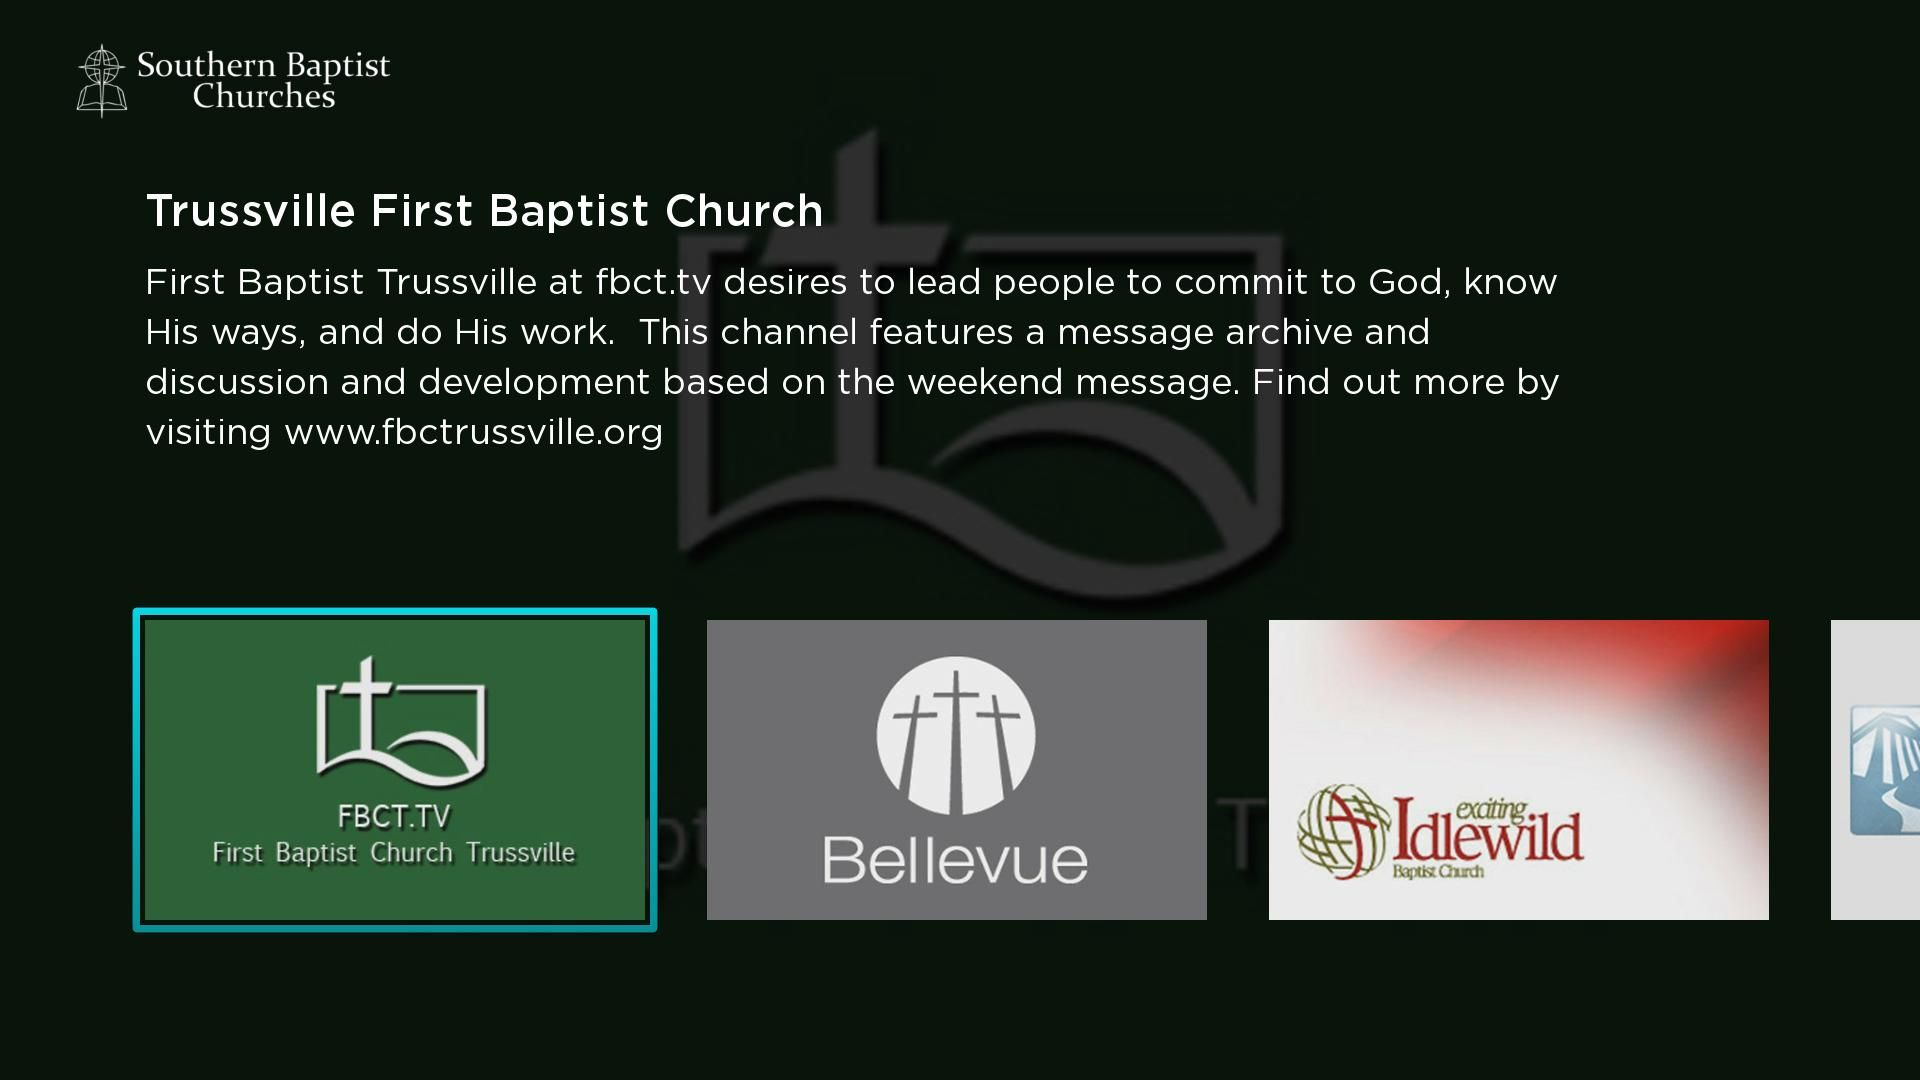 Southern Baptist Churches Screenshot 001